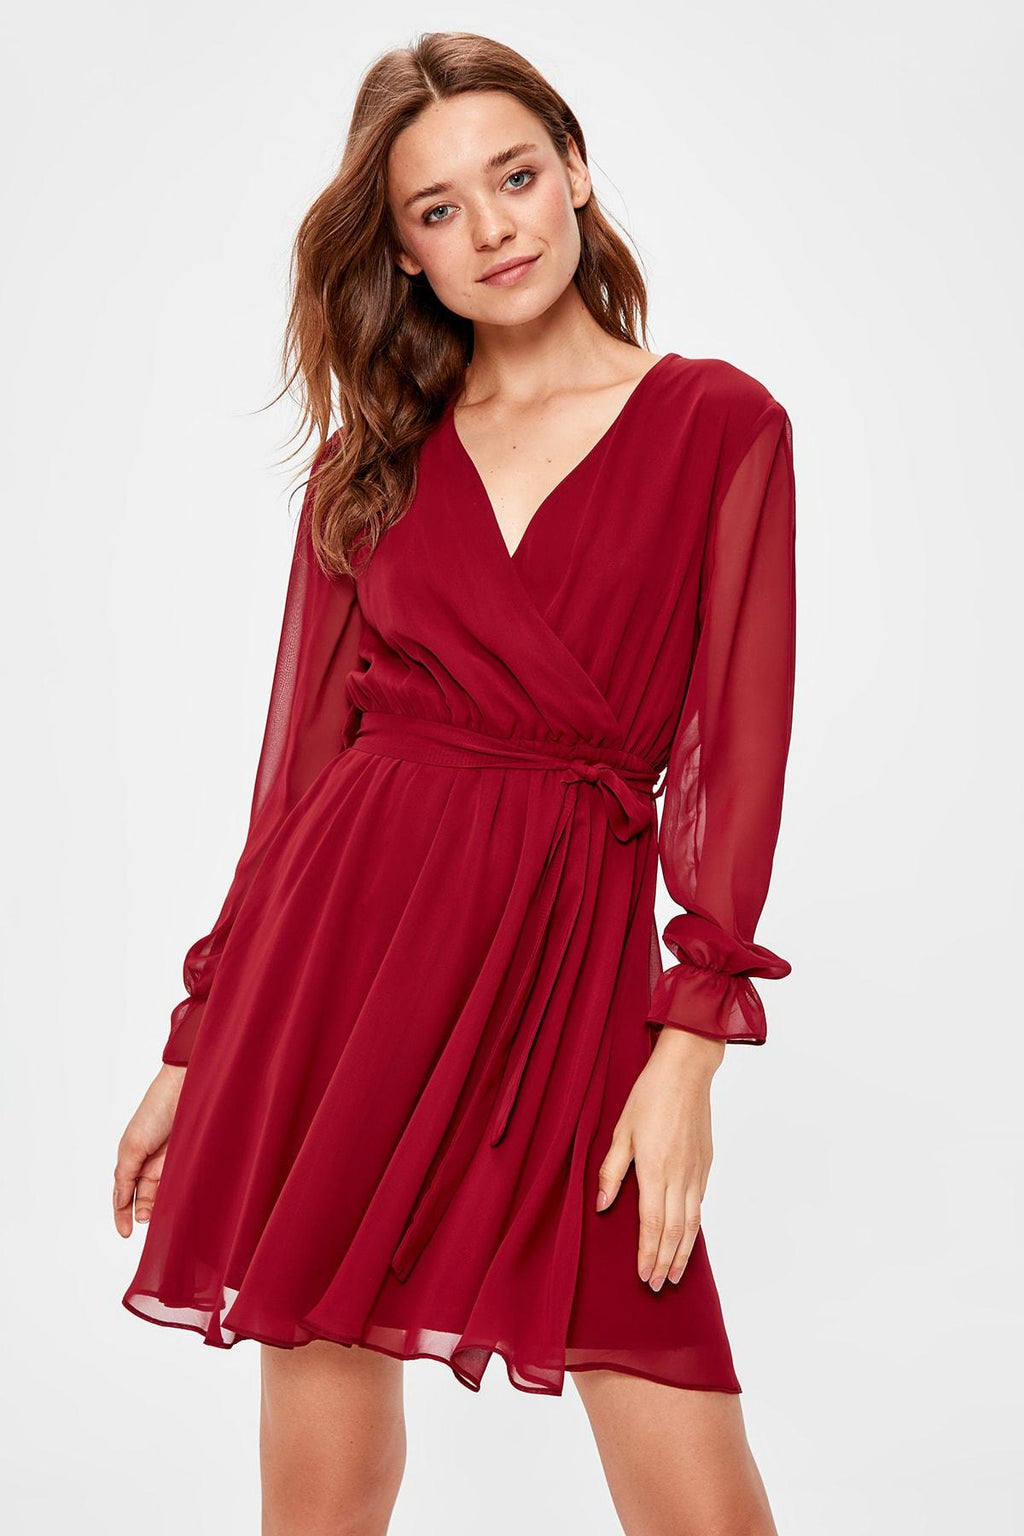 Burgundy Belted Dress